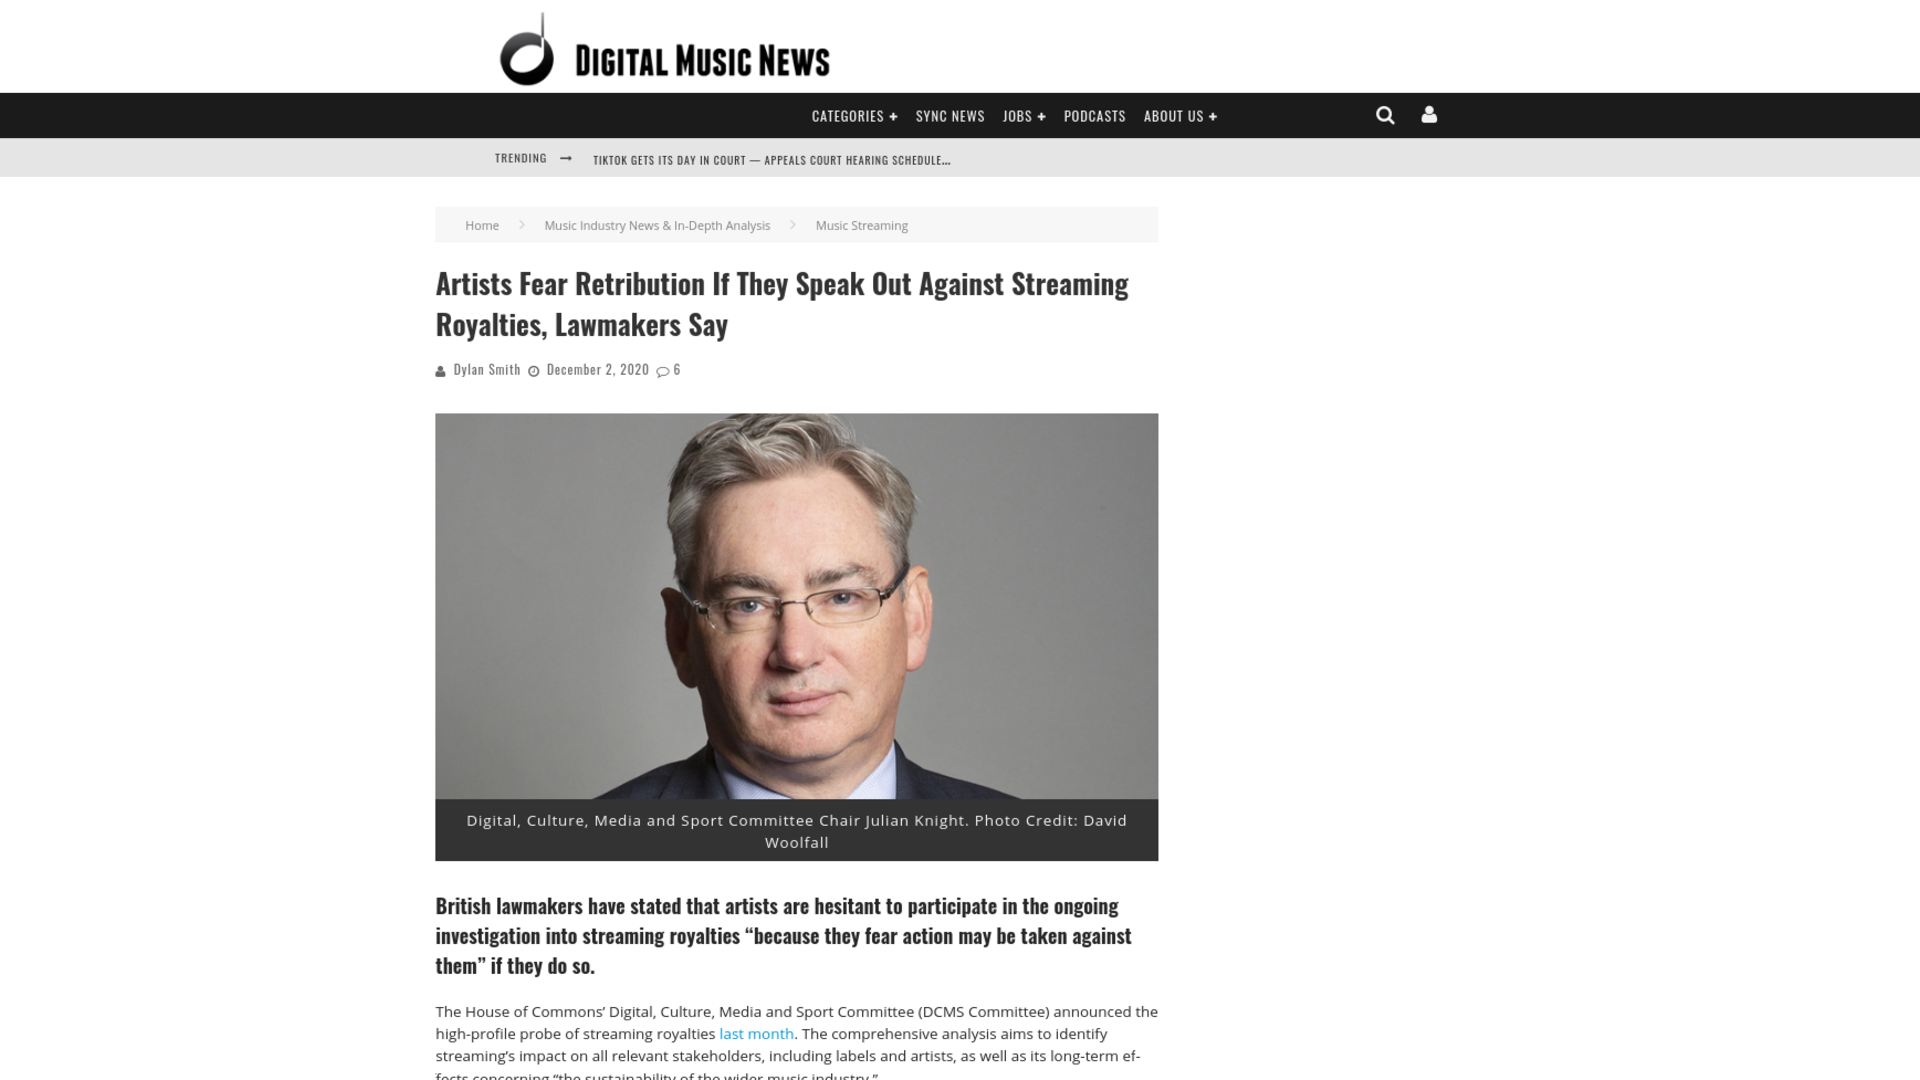 Fairness Rocks News Artists Fear Retribution If They Speak Out Against Streaming Royalties, Lawmakers Say